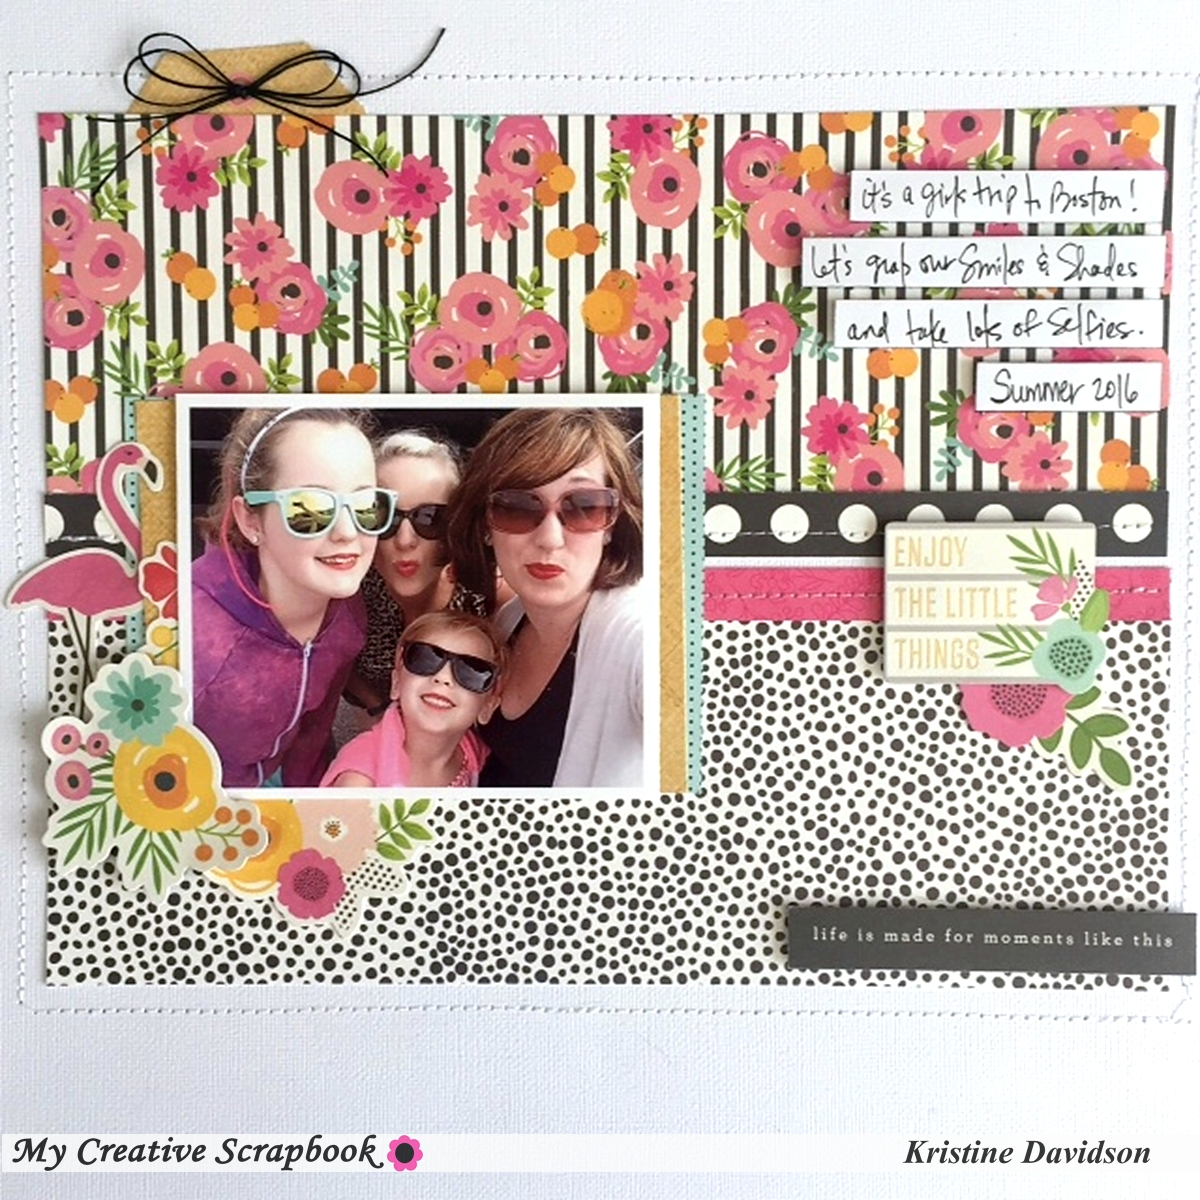 MCS-Kristine Davidson - Main Kit - Layout2